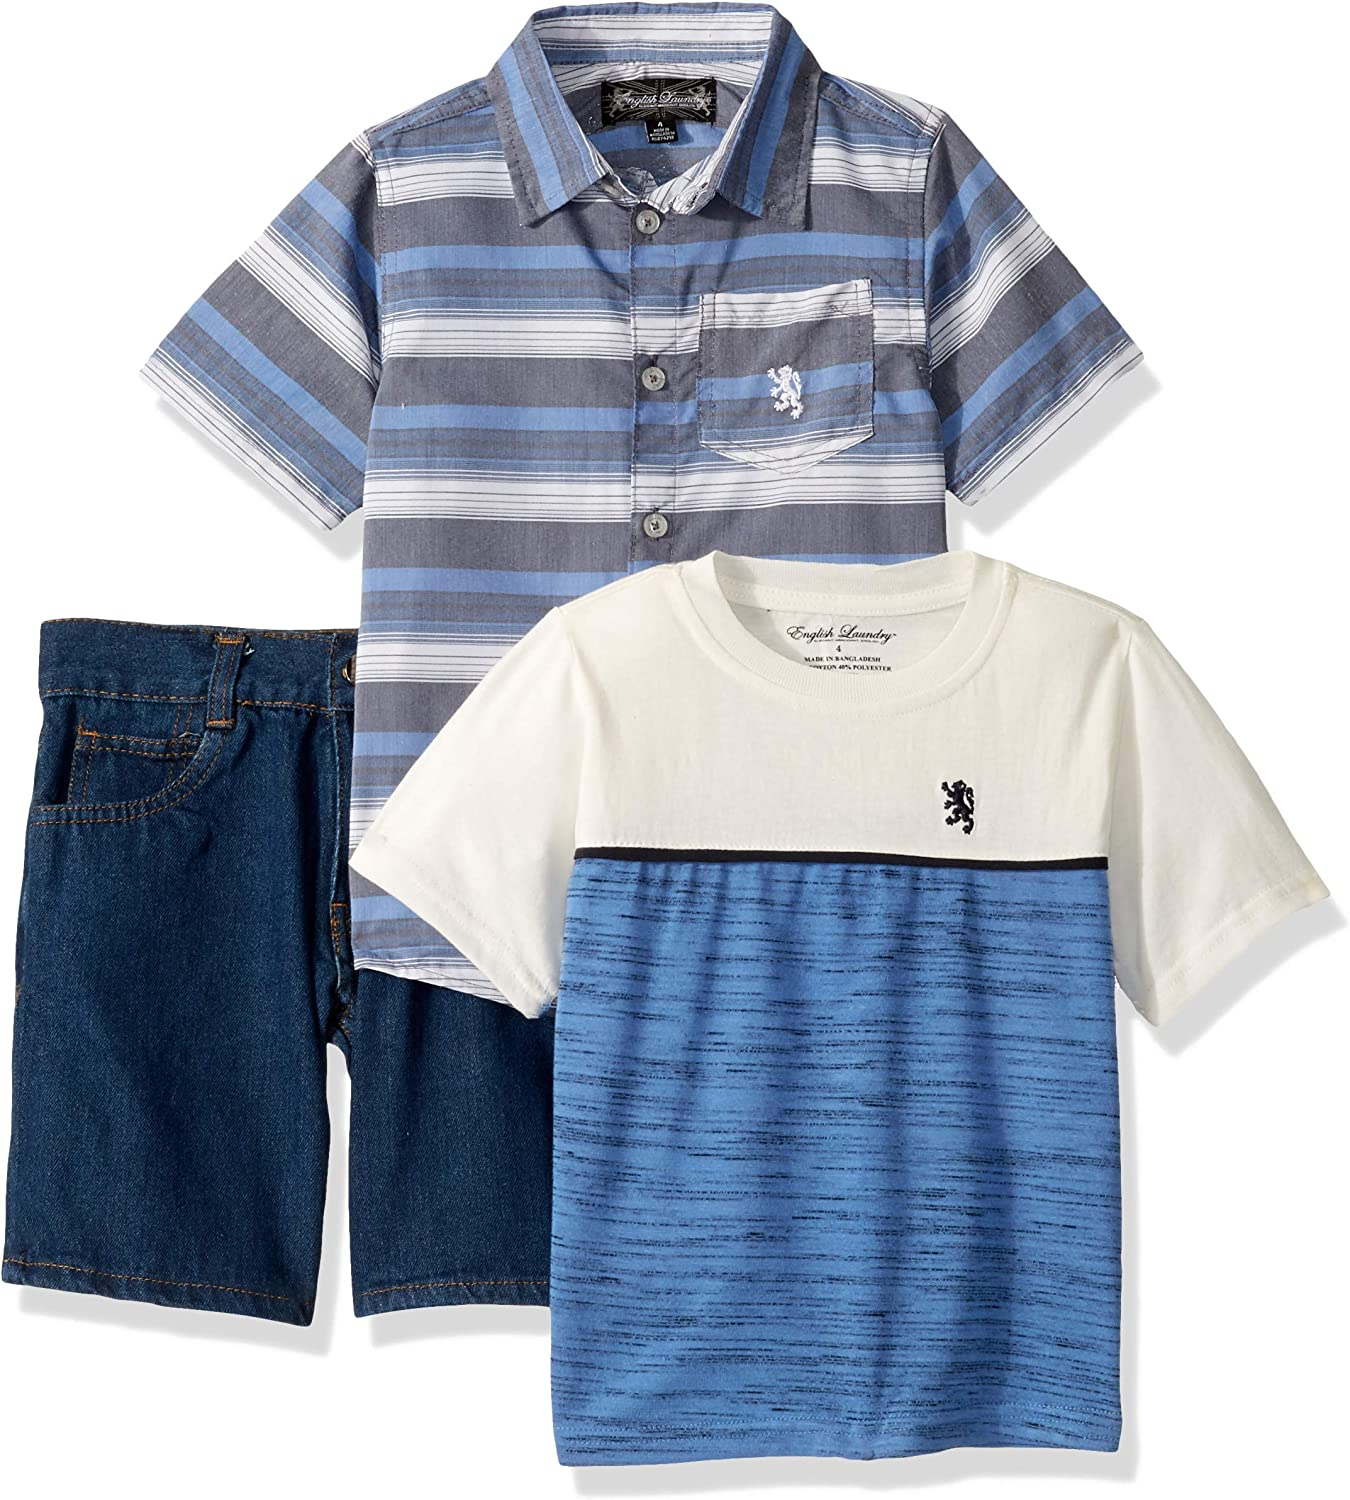 English Laundry Boys Sleeve Woven, T-Shirt, and Denim Short Set